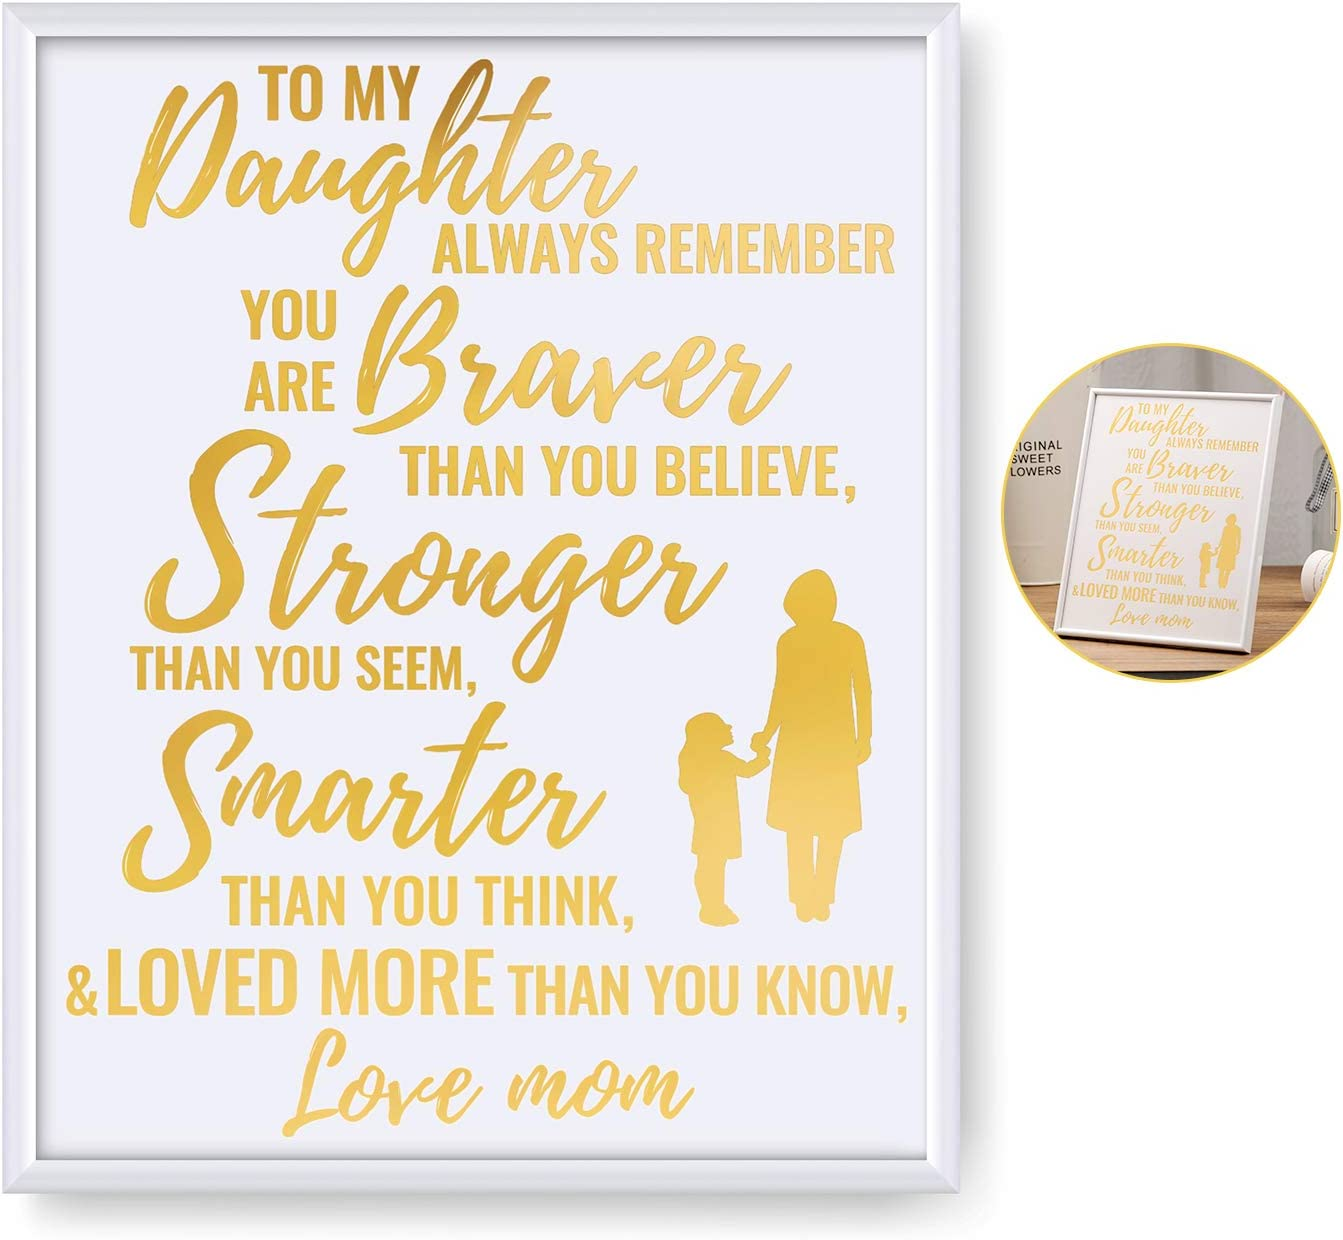 Inspirational Gifts for Daughter from Mom Dad | 8x10 Inch Gold Foil Art Print Motivational Poster with Frame | Birthday Christmas Gifts for Women Teens & Girls Bedroom Décor Wall Art